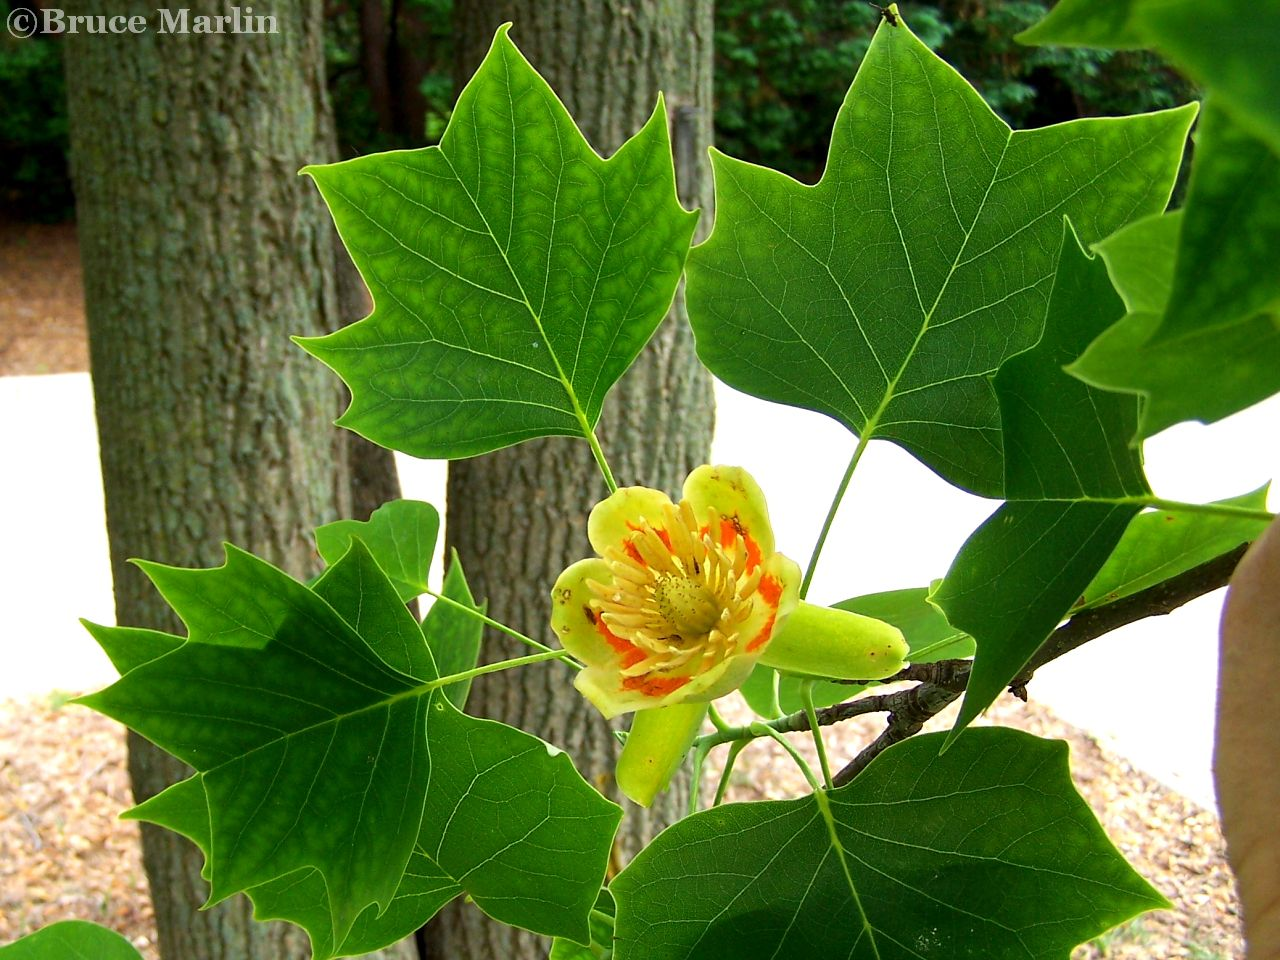 Magnolia Family; Tuliptree flower & foliage